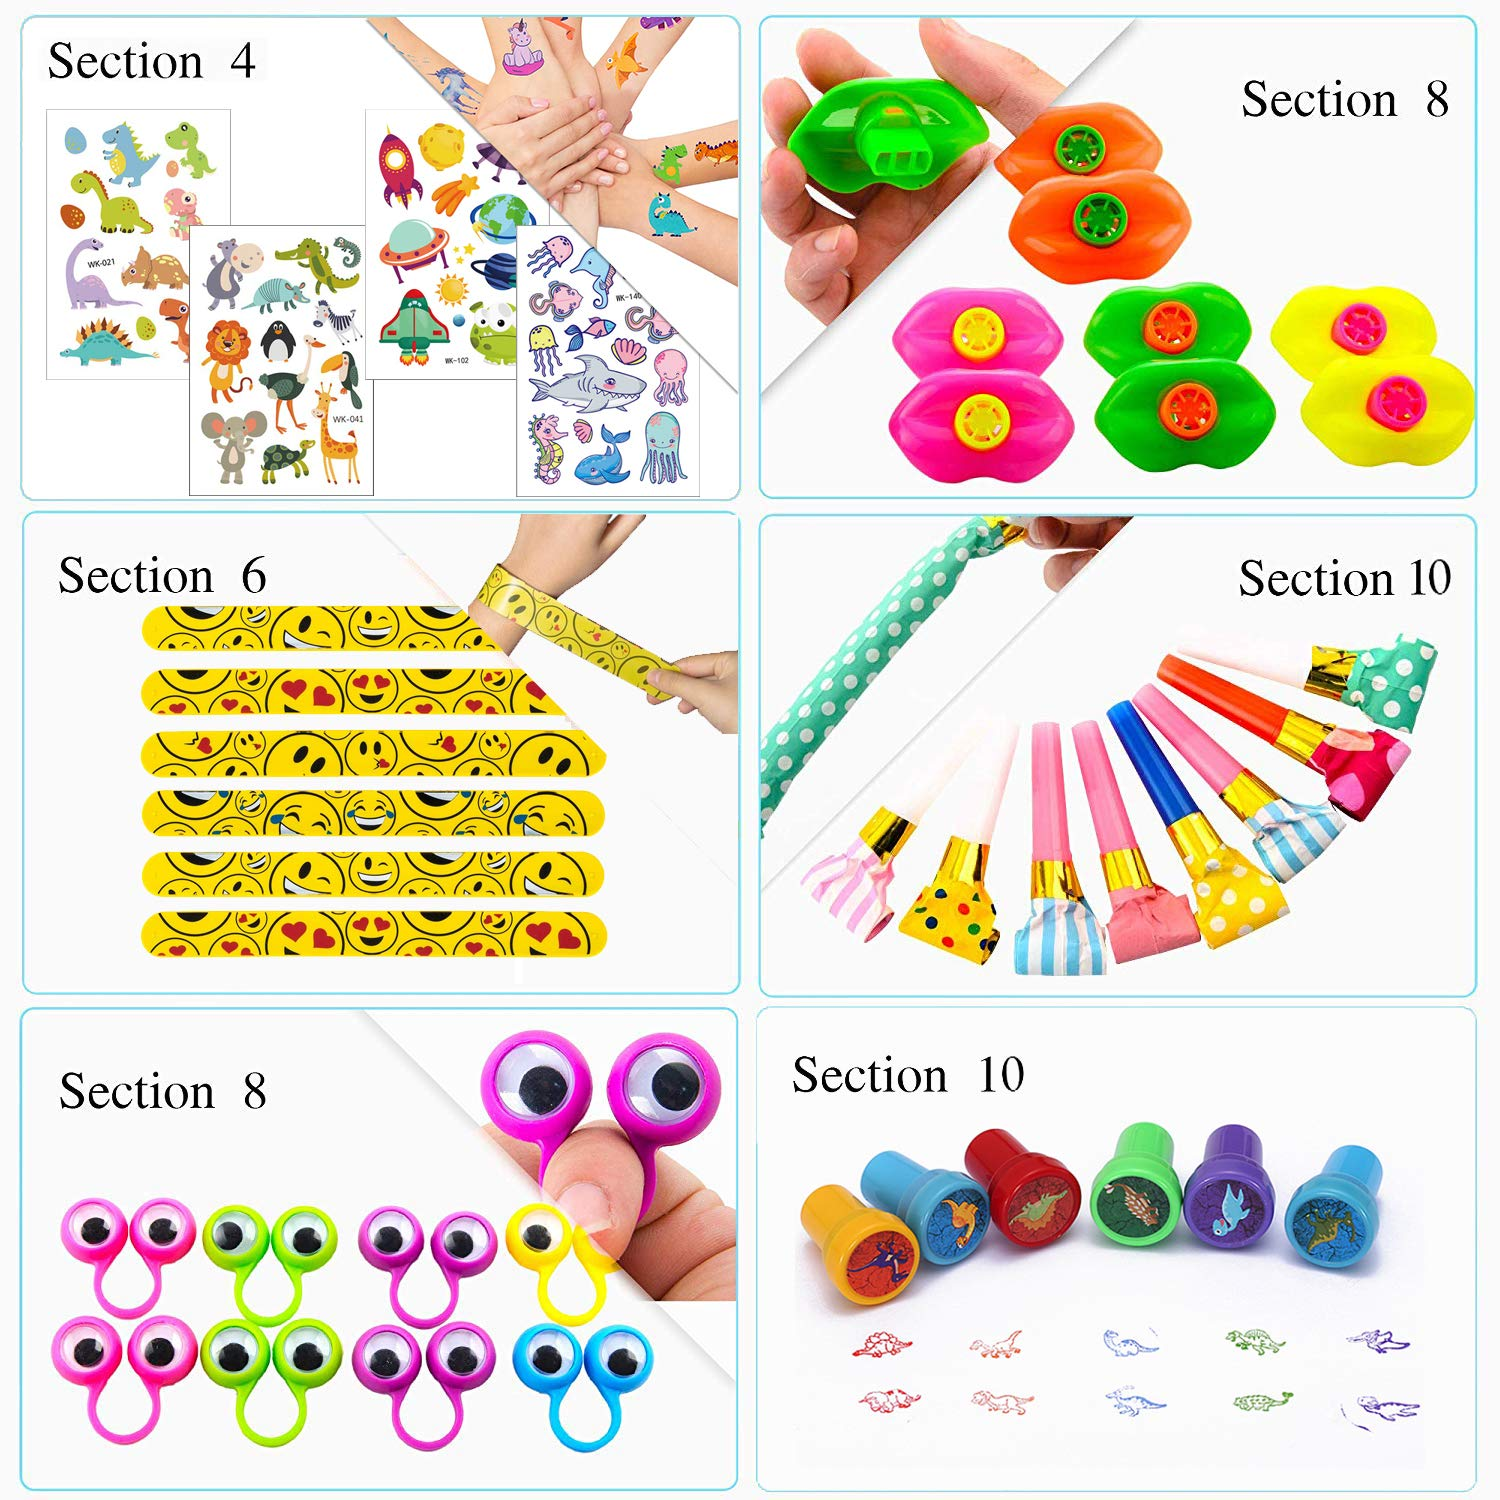 Easter Egg Stuffers Carnival Prizes 154PCS Carnival Prizes for Kids Birthday Party Favors Prizes Box Toy Assortment for Classroom Pinata Fillers